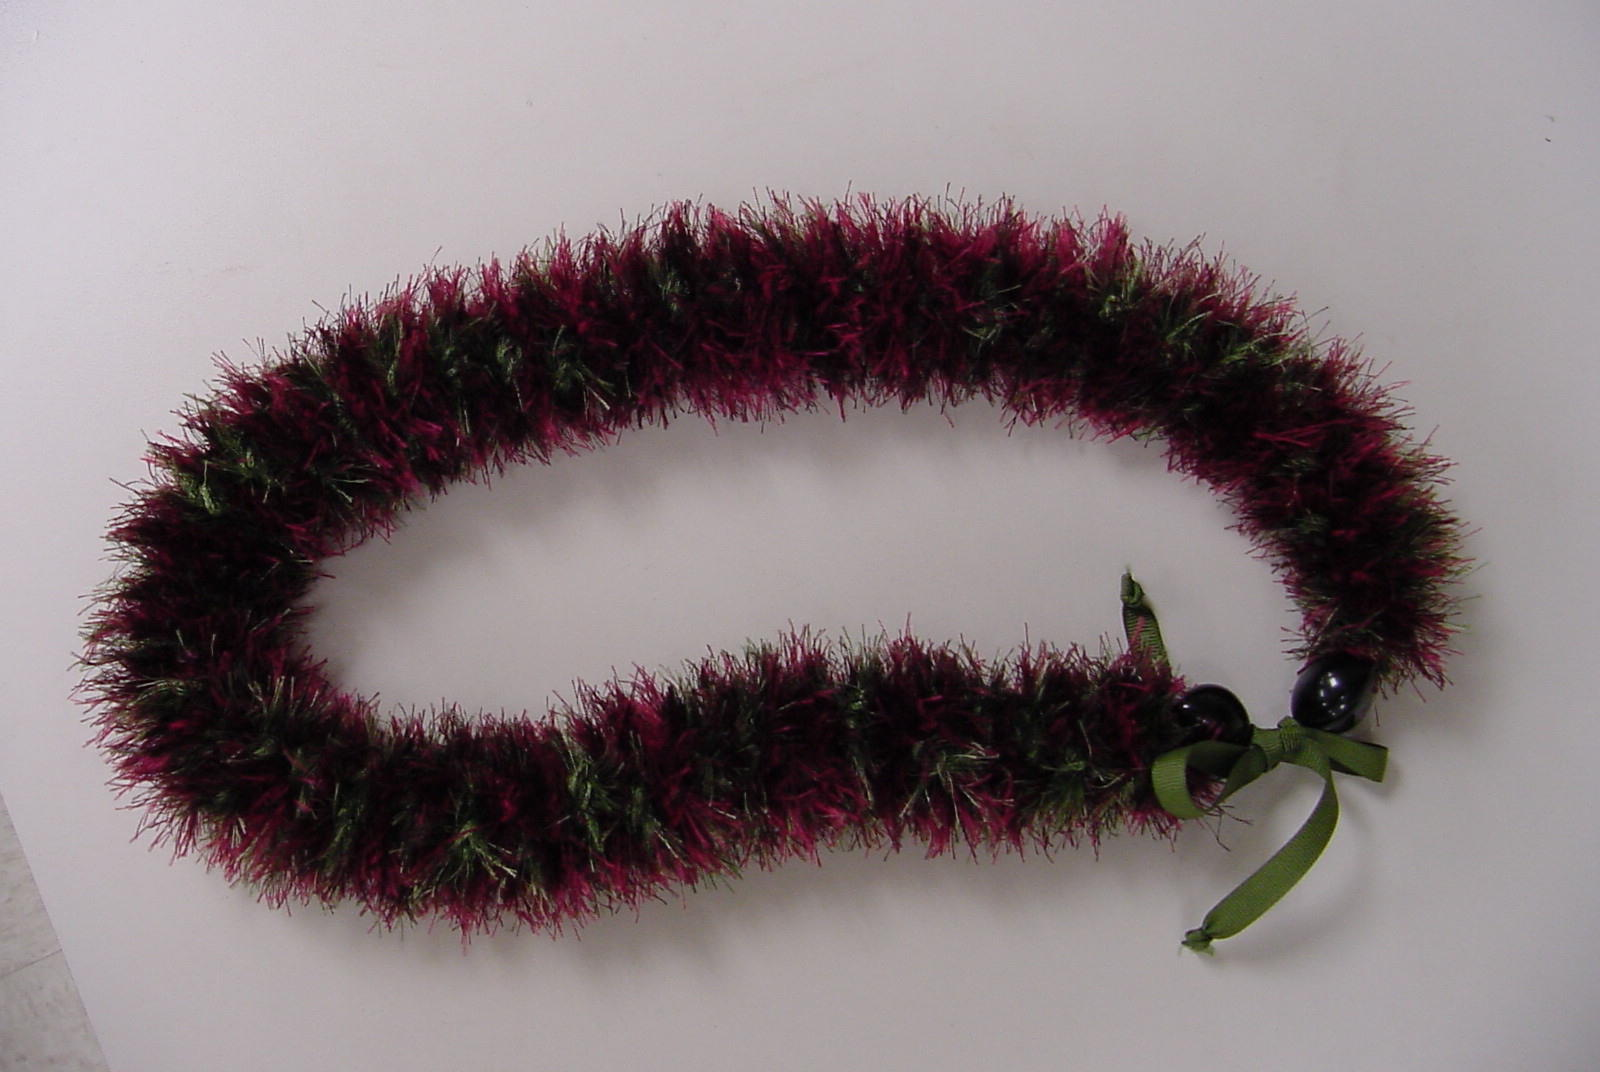 Sample of green/red eyelash lei